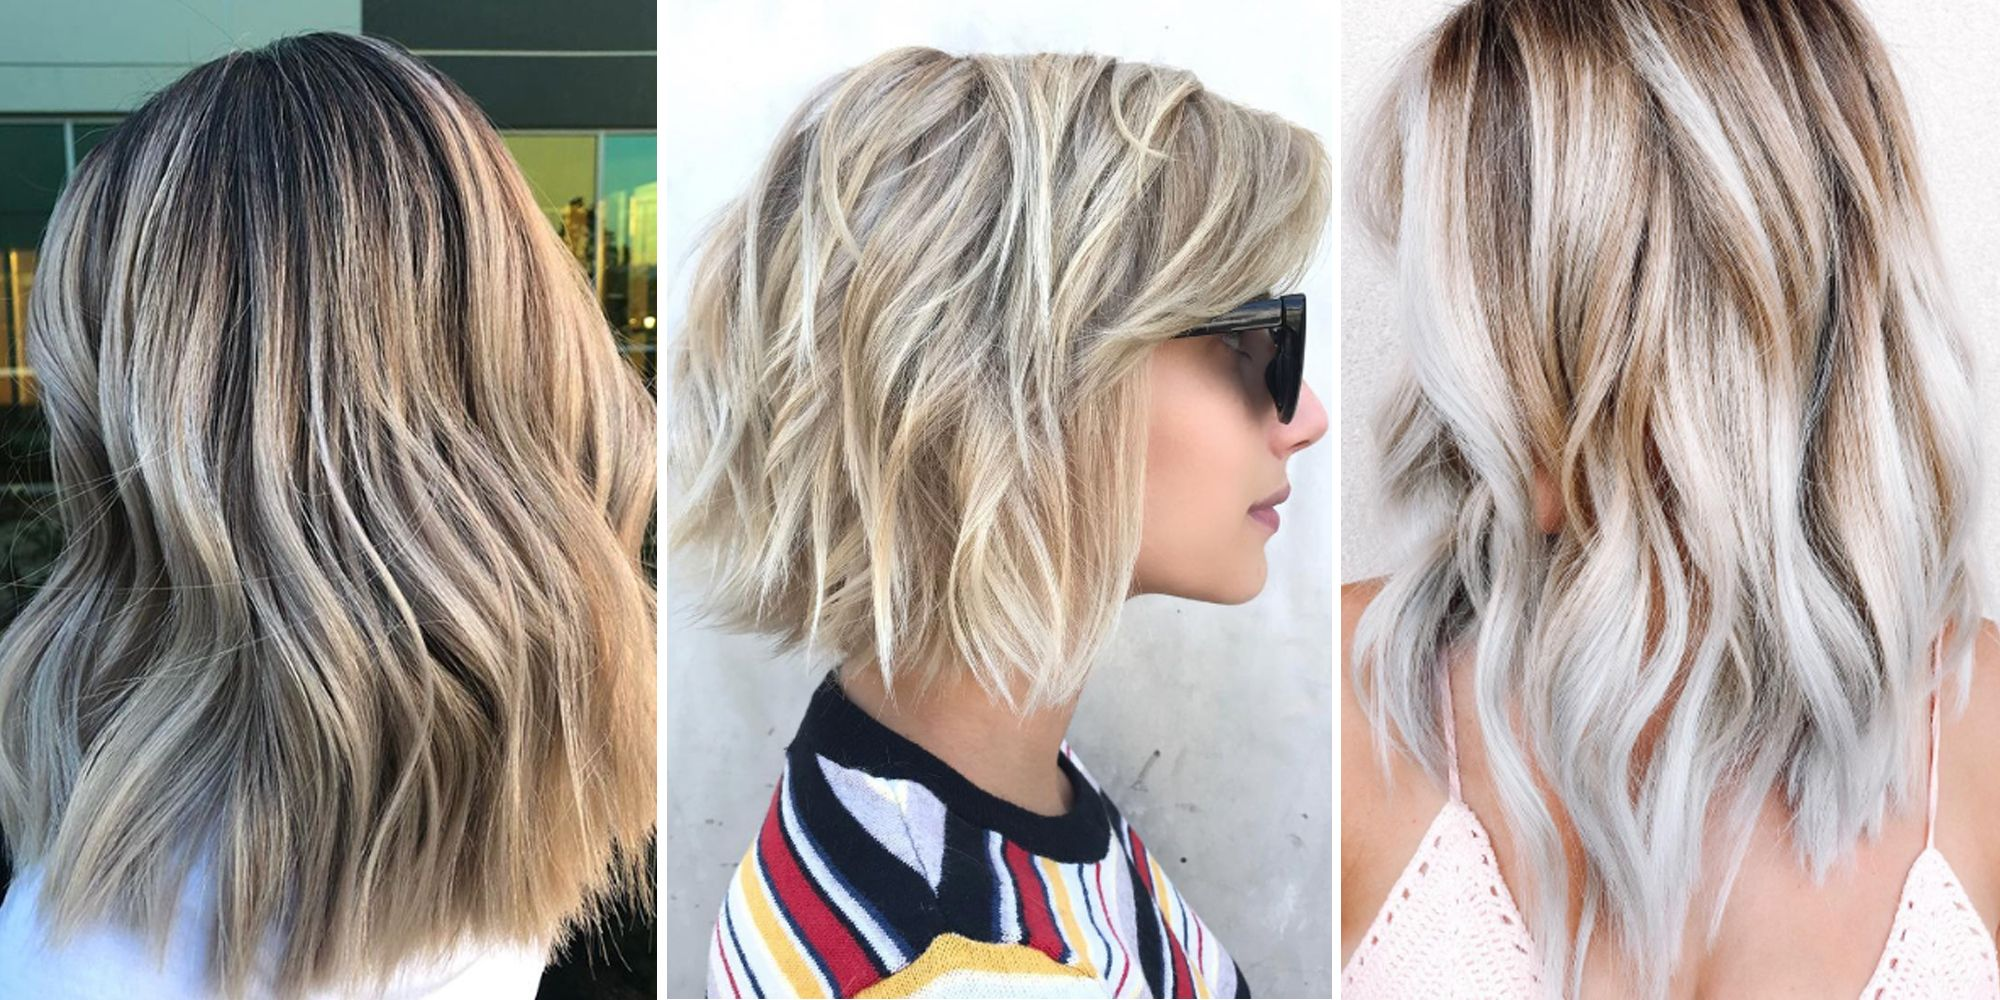 0a201948f5c1 8 Blonde Hair Trends For 2019 - New Ways to Try Blonde Hair Colour